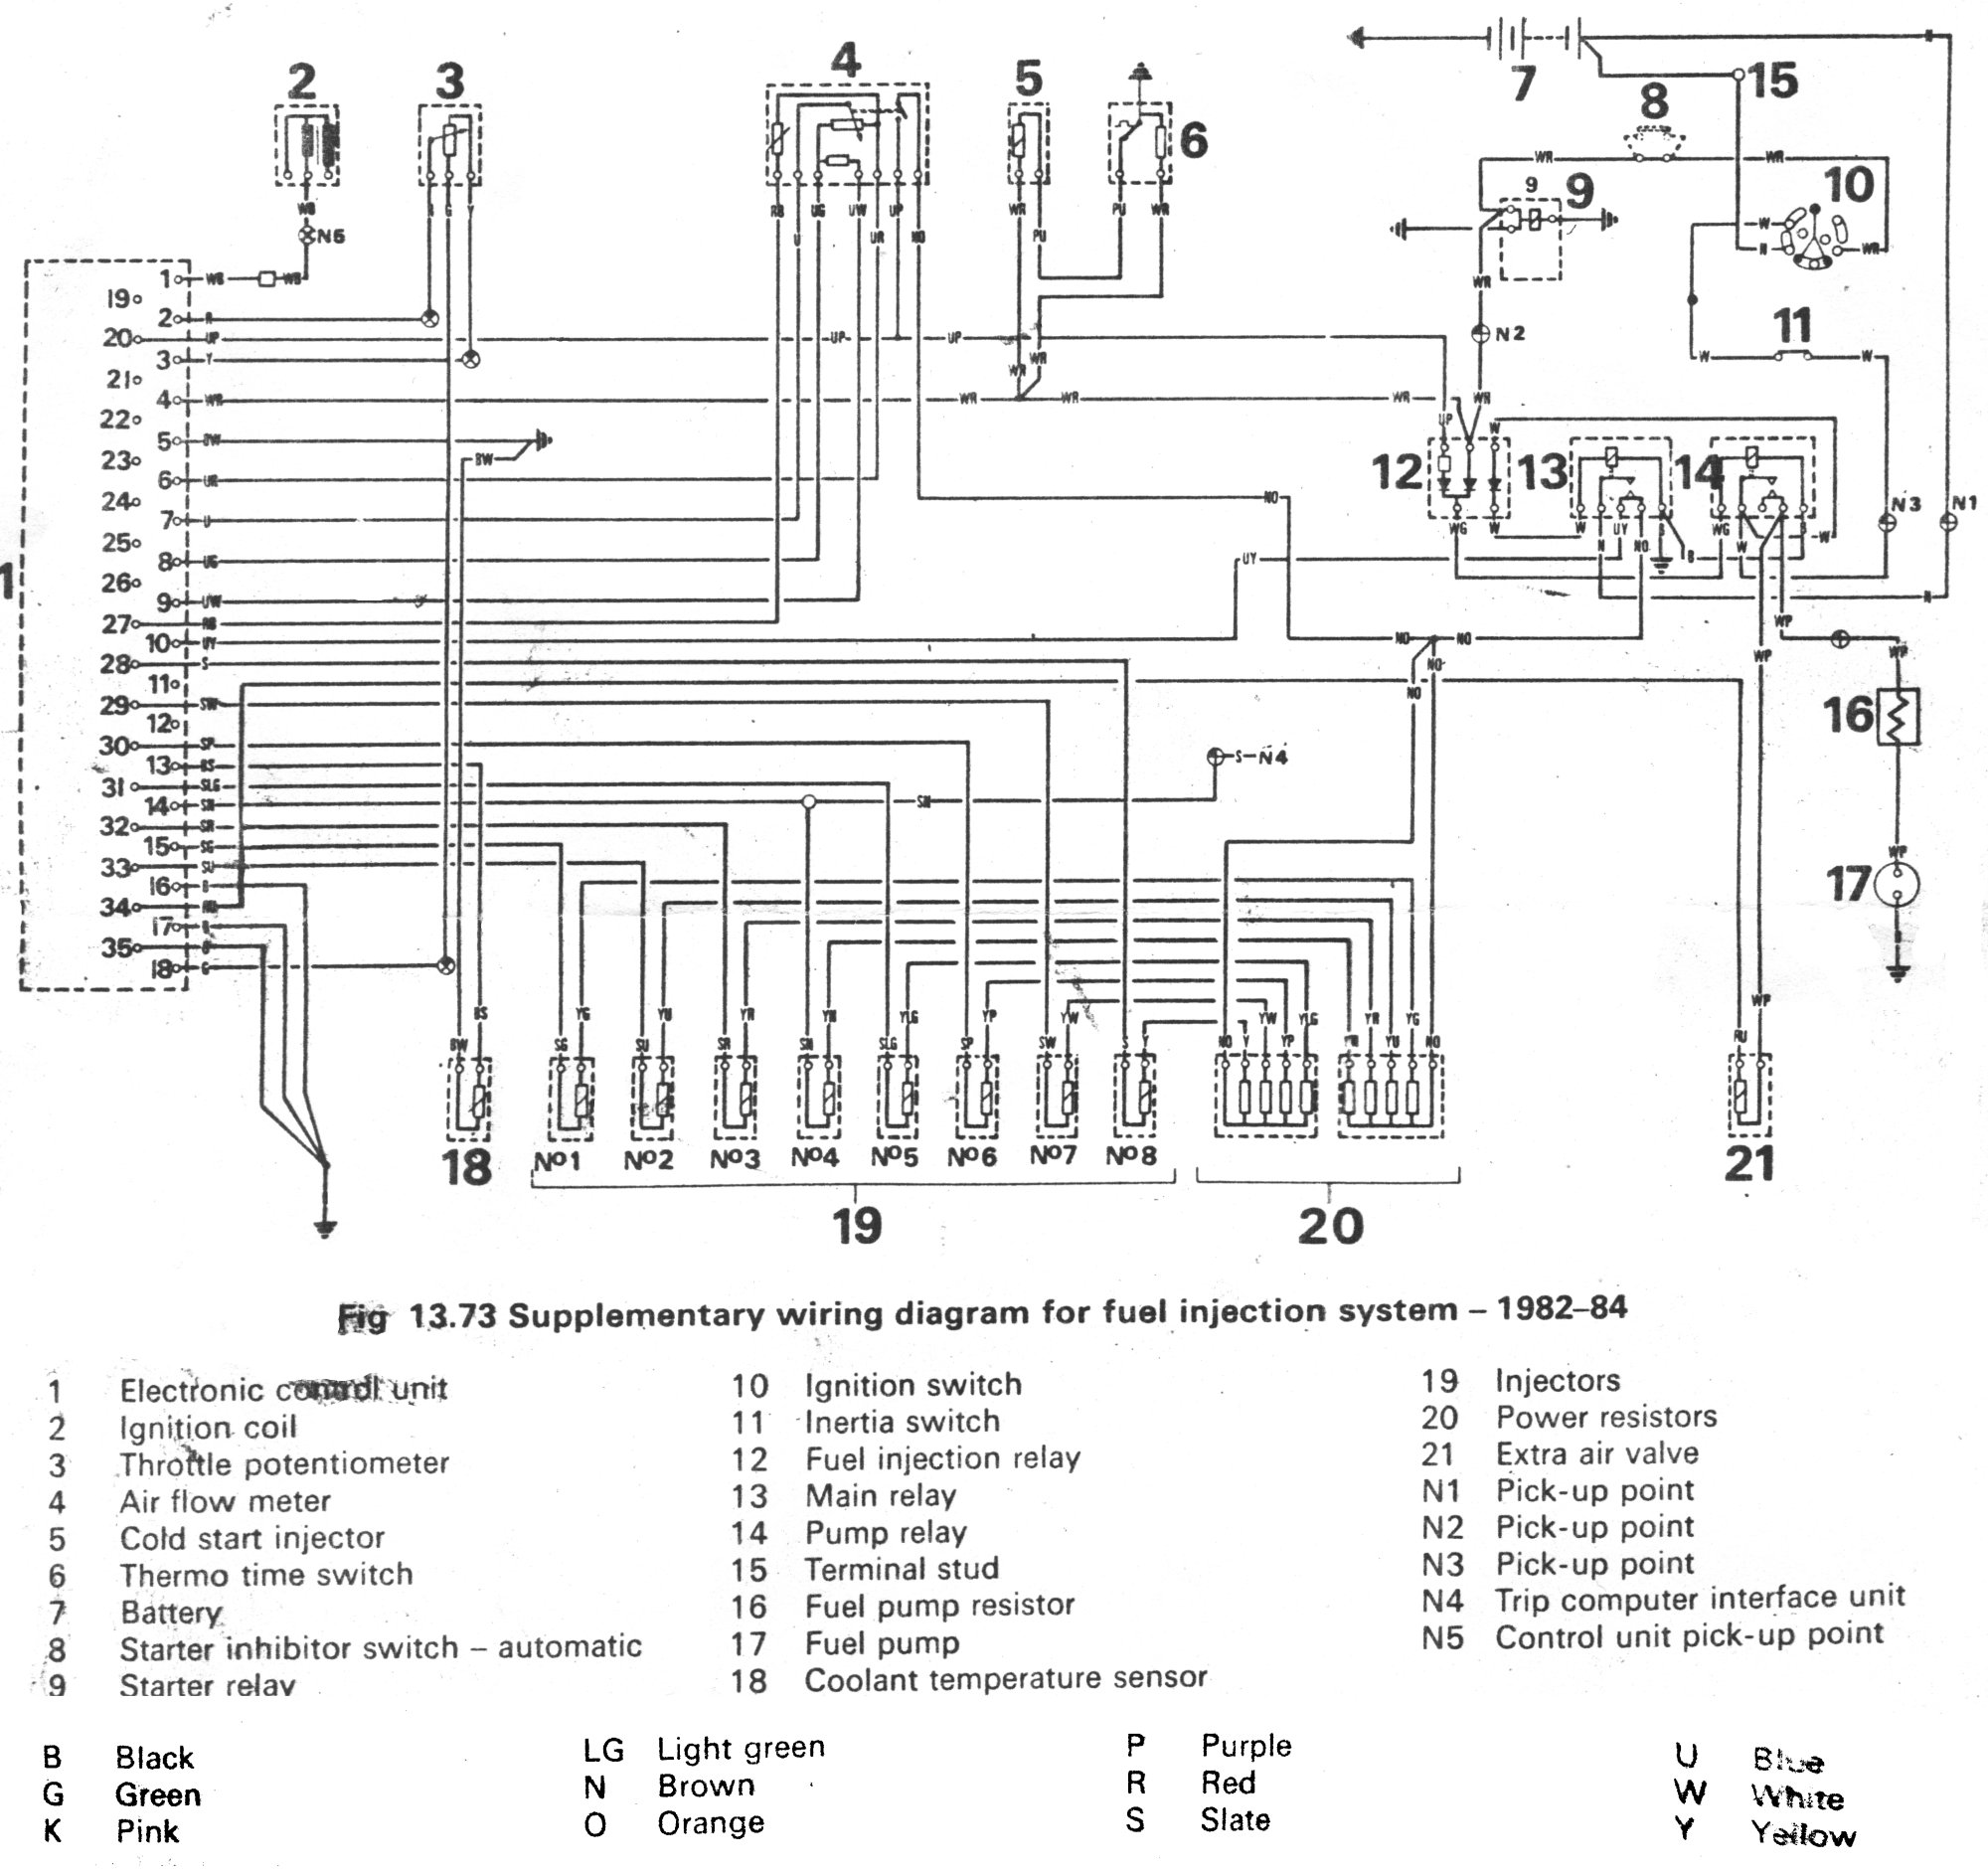 1999 ford ranger xlt fuse box diagram TgqcMDc wiring diagram for car 1998 ford f 150 wiring diagram 1999 ford ranger ignition wiring diagram at soozxer.org